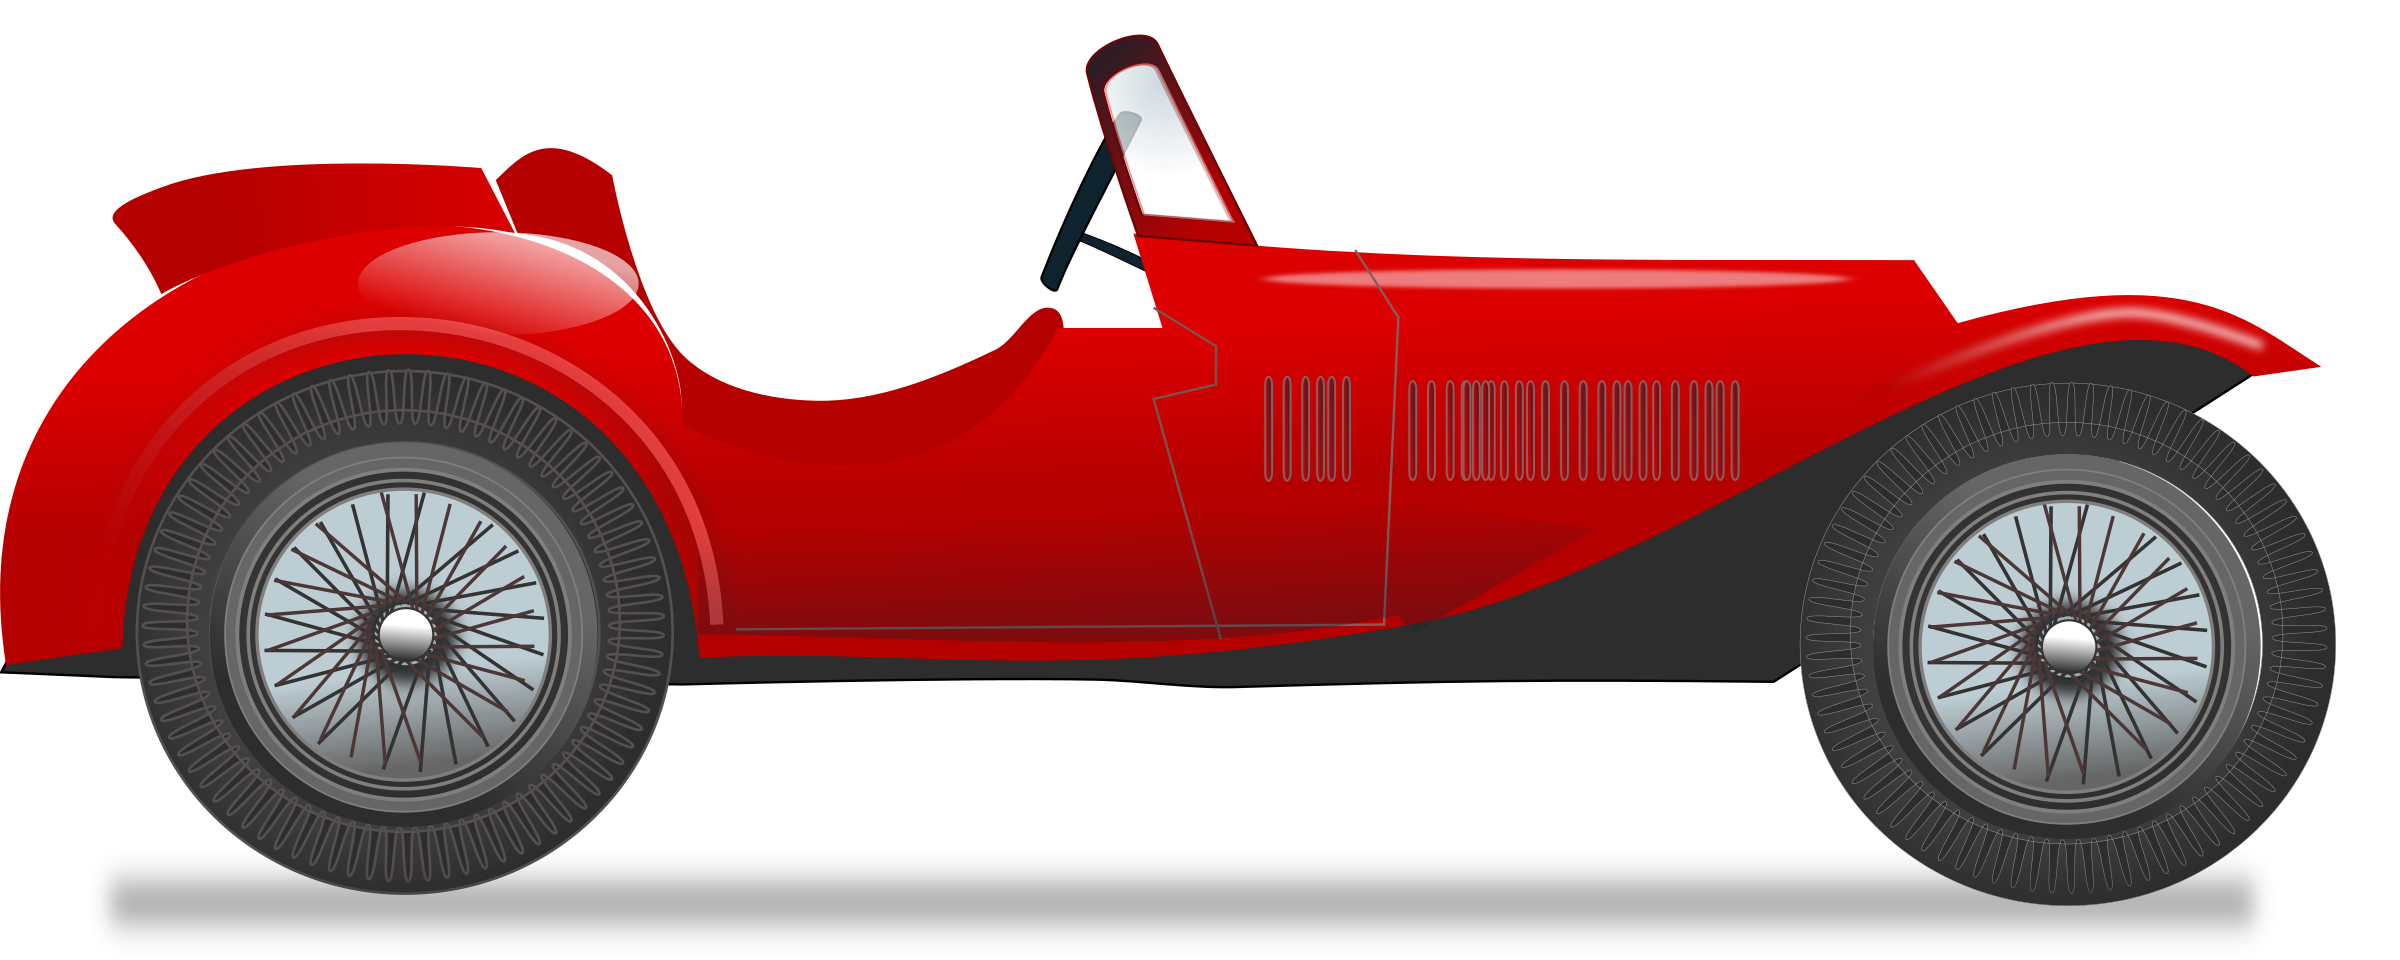 2400x960 Race Car Clipart Old Fashioned Car